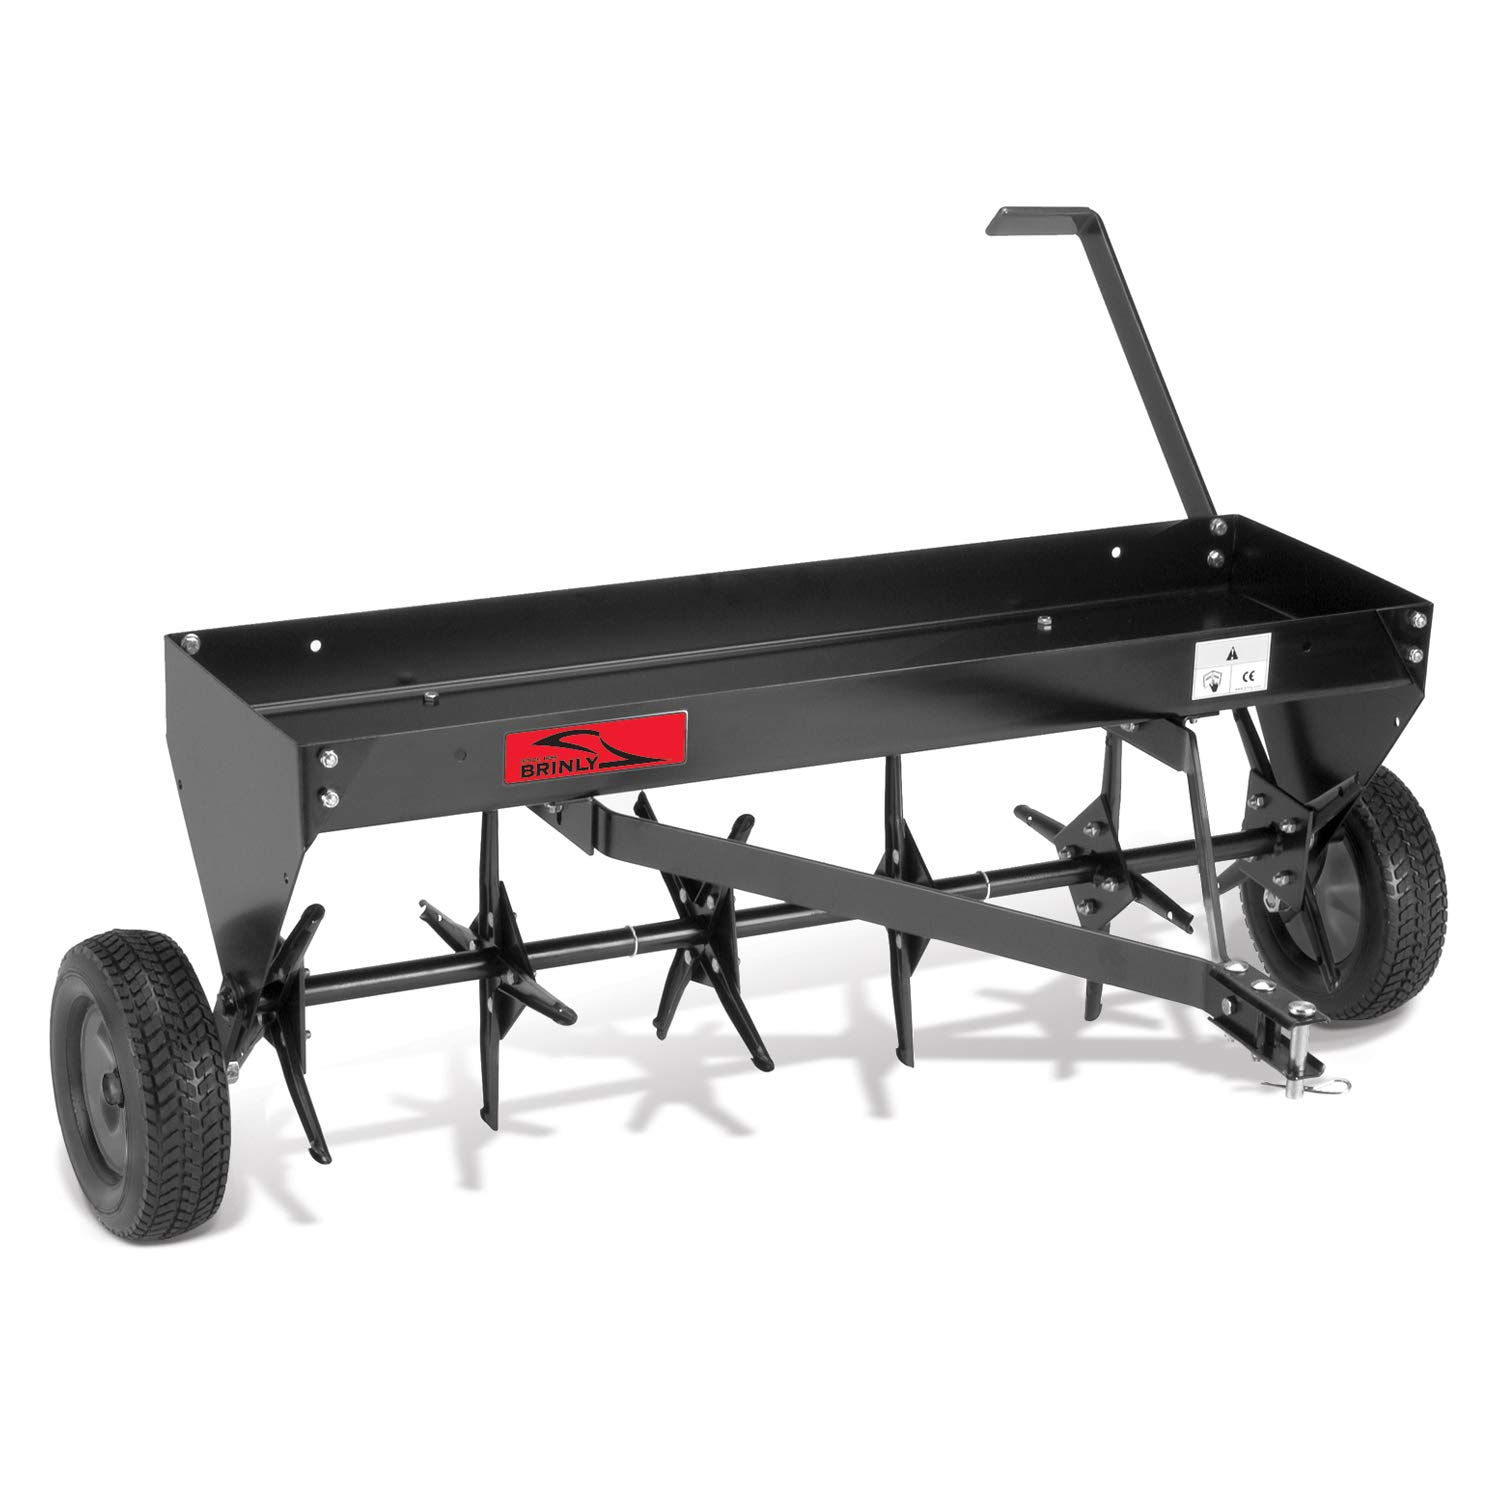 Brinly PA-40BH Tow Behind Plug Aerator, 40-Inch by Brinly